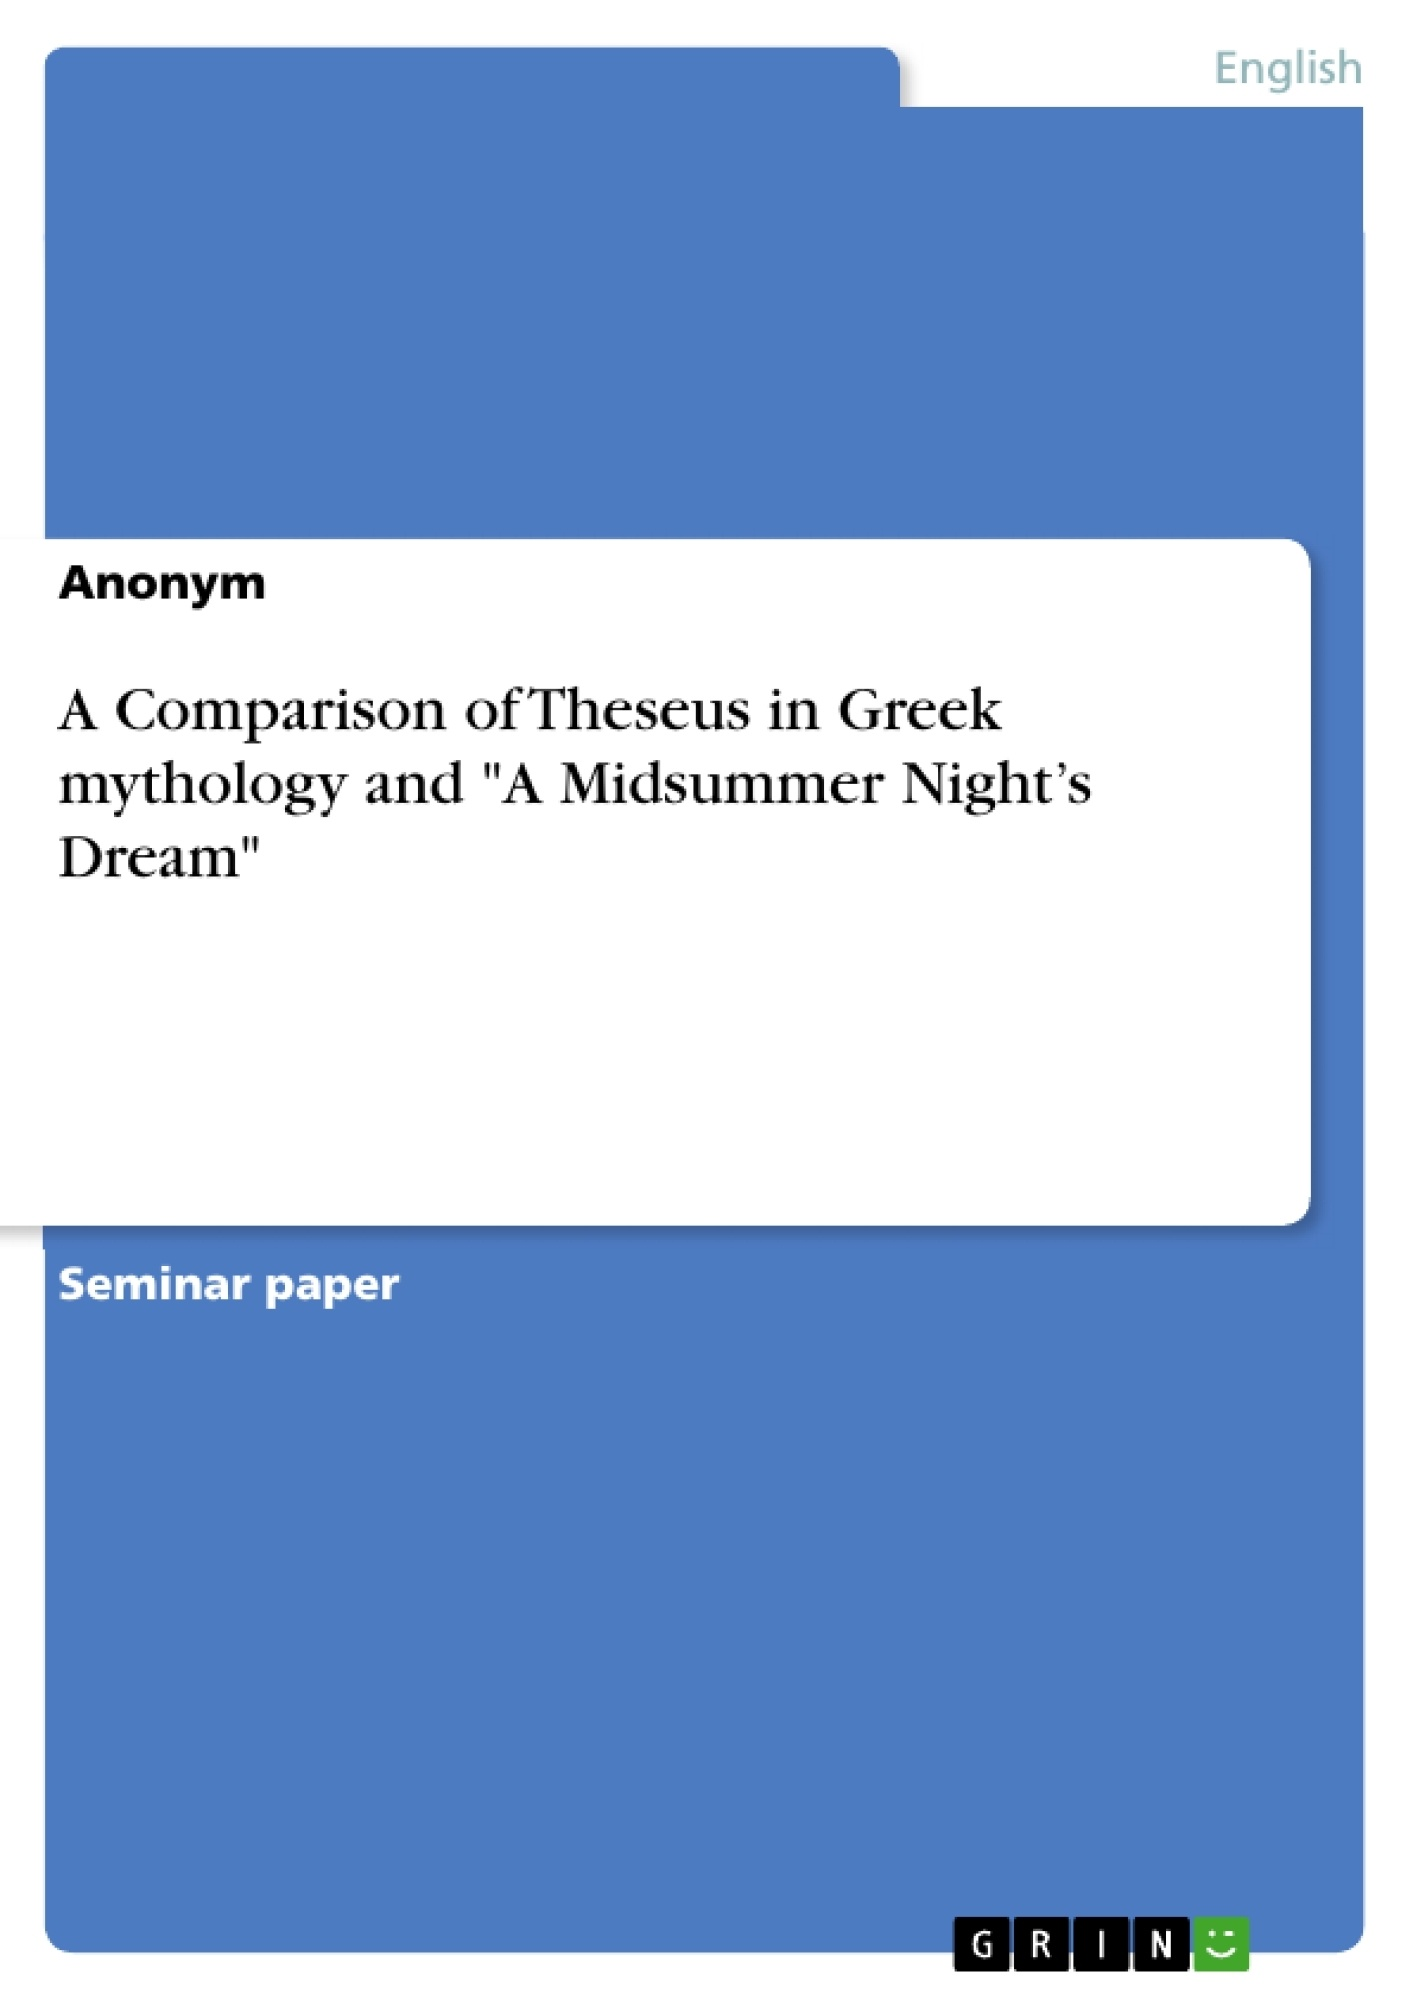 """Title: A Comparison of Theseus in Greek mythology and """"A Midsummer Night's Dream"""""""